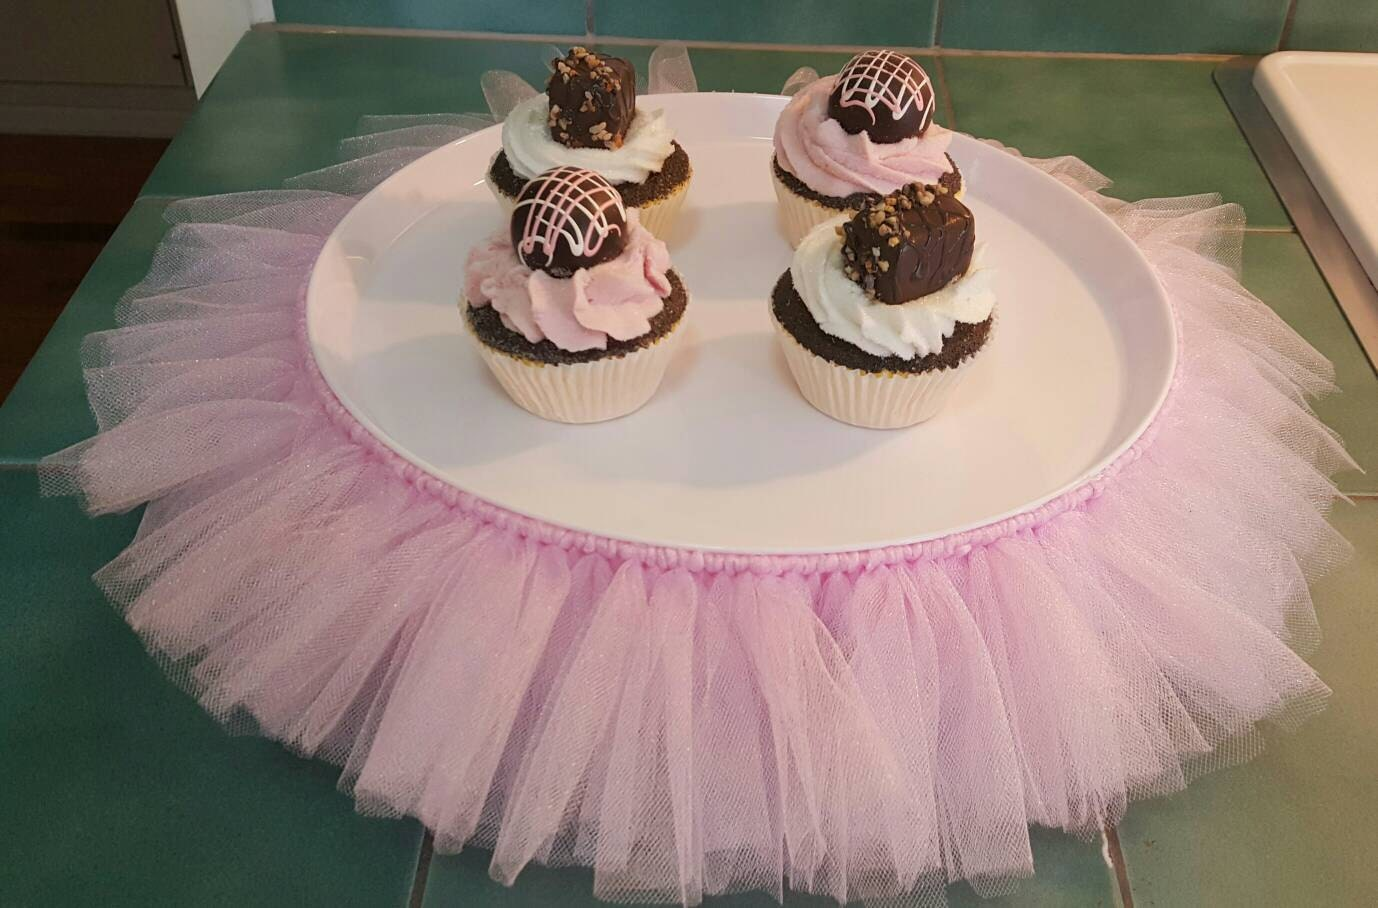 Cake Stand Tutu Pink Cupcake Tulle Skirt Decorations Baby